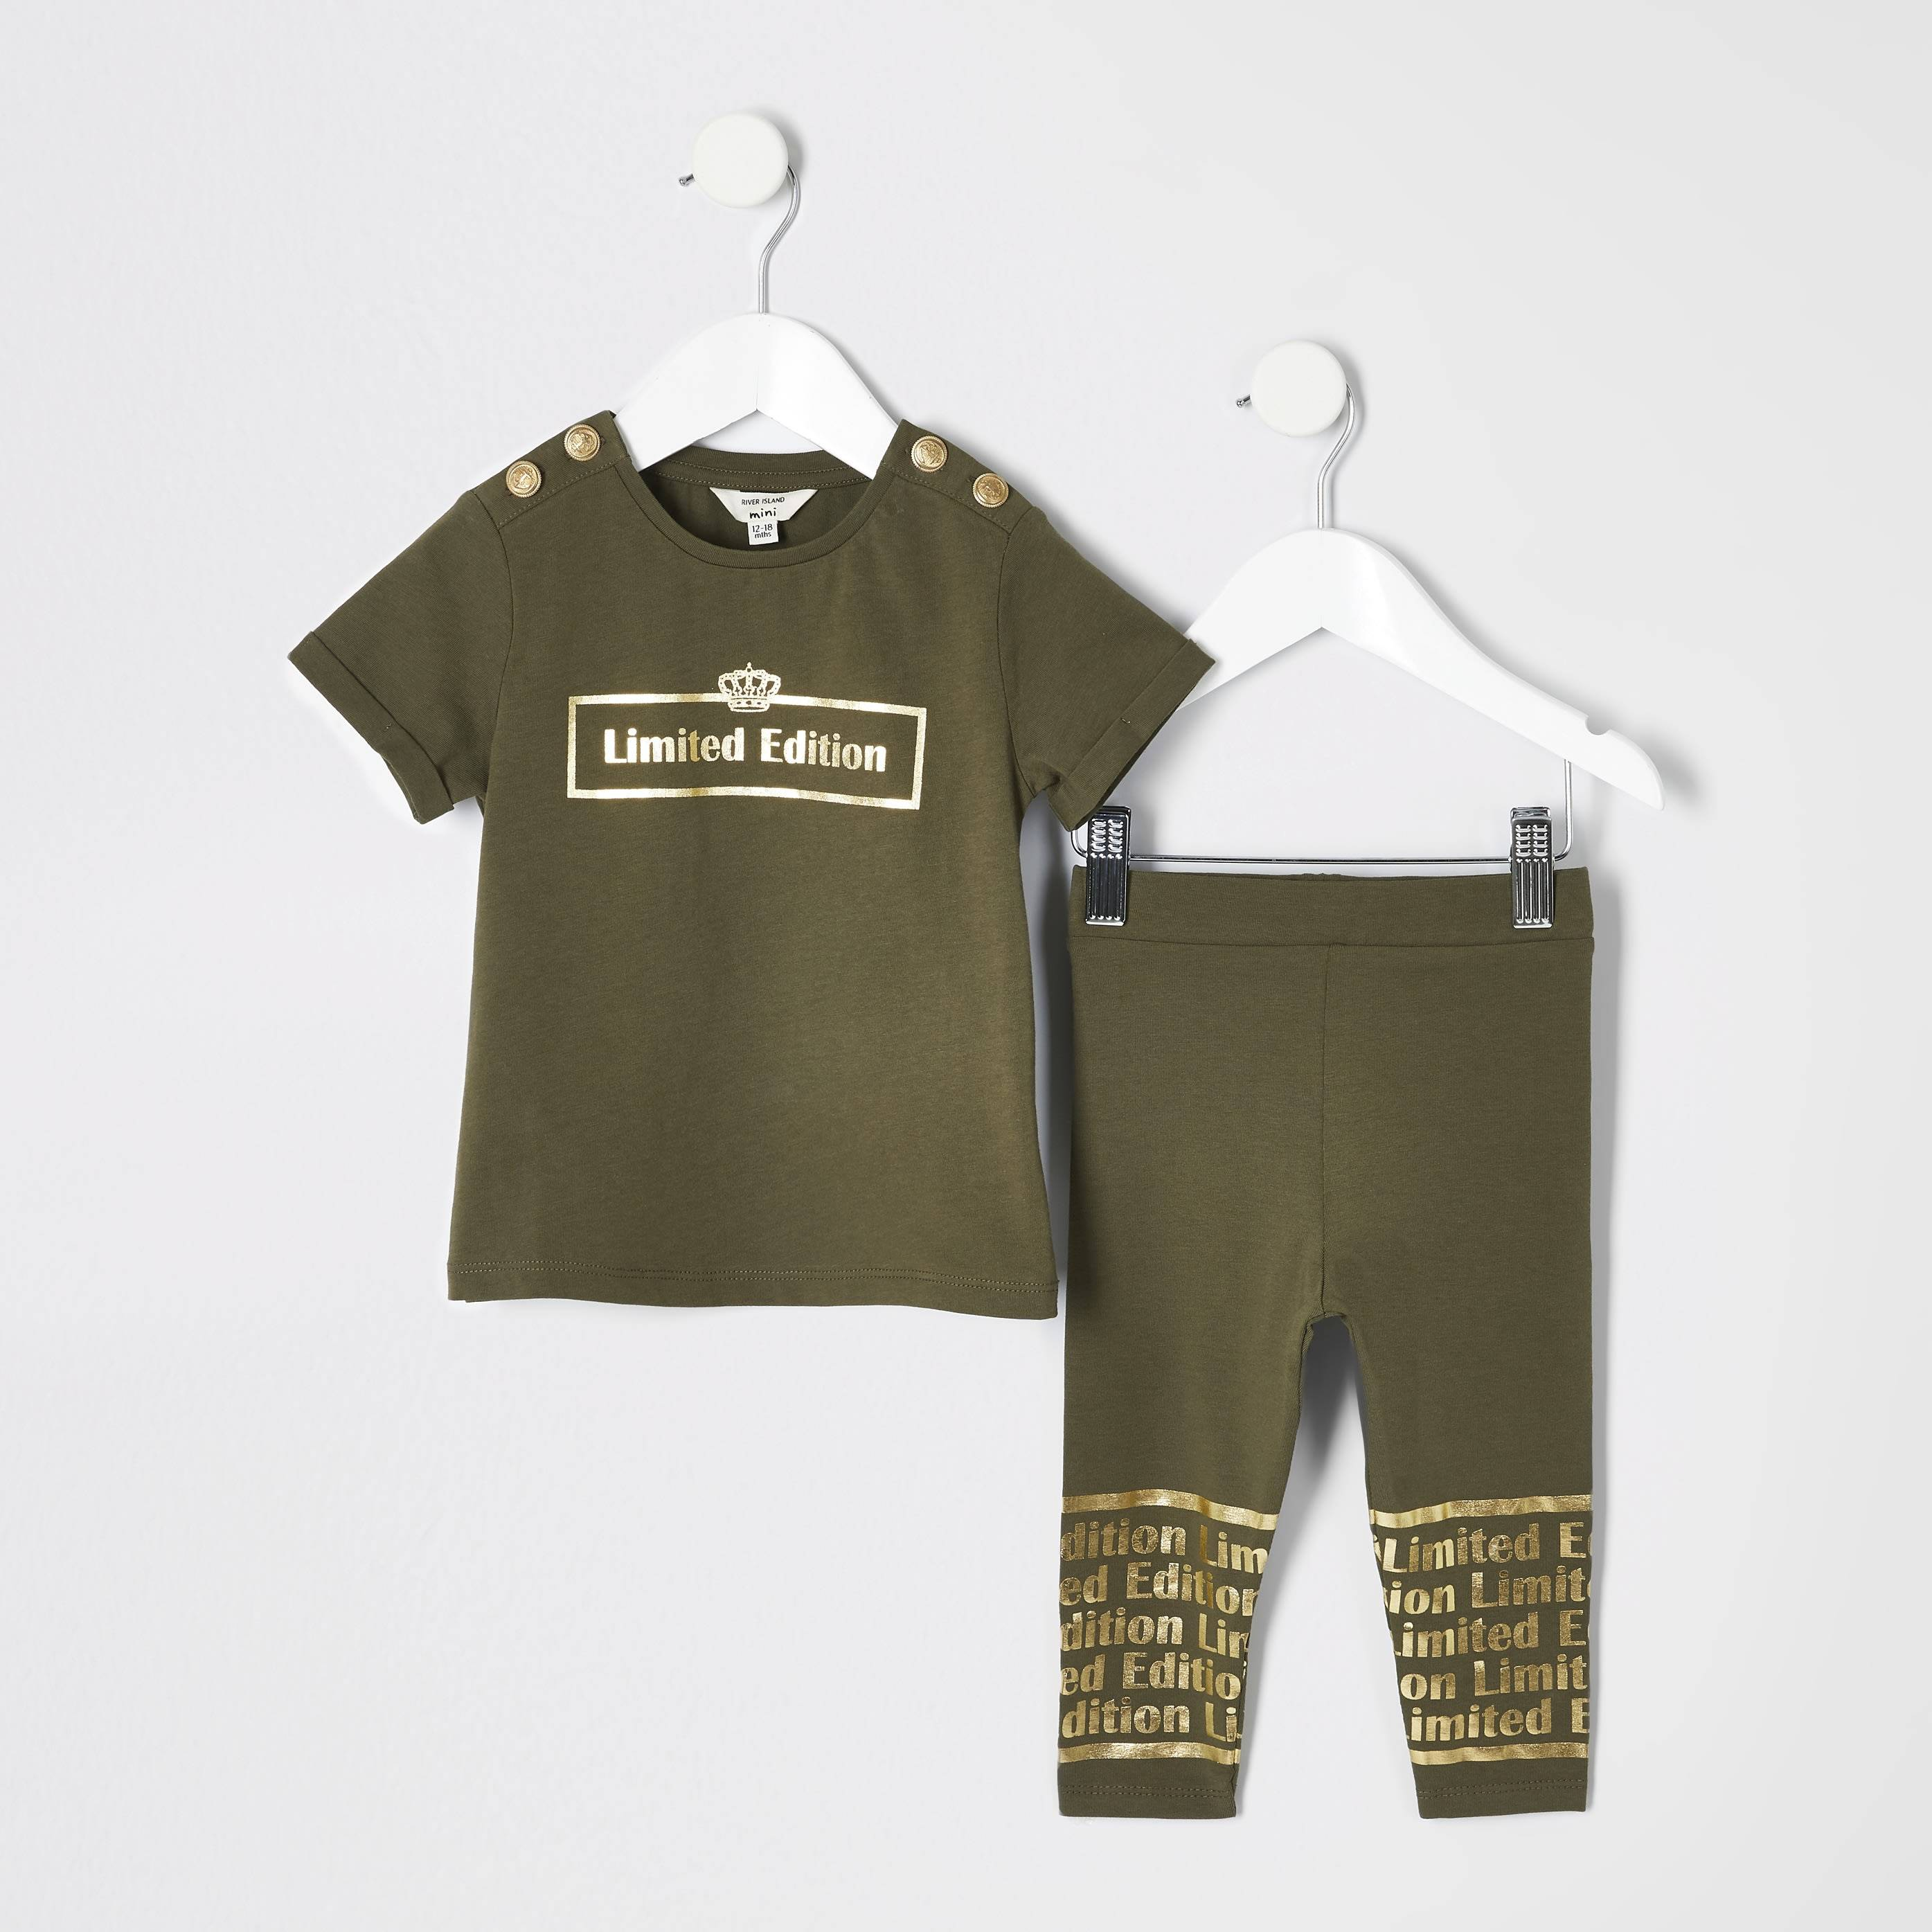 River Island Baby Girls 'limited edition' T-shirt outfit (3-4 Yrs)